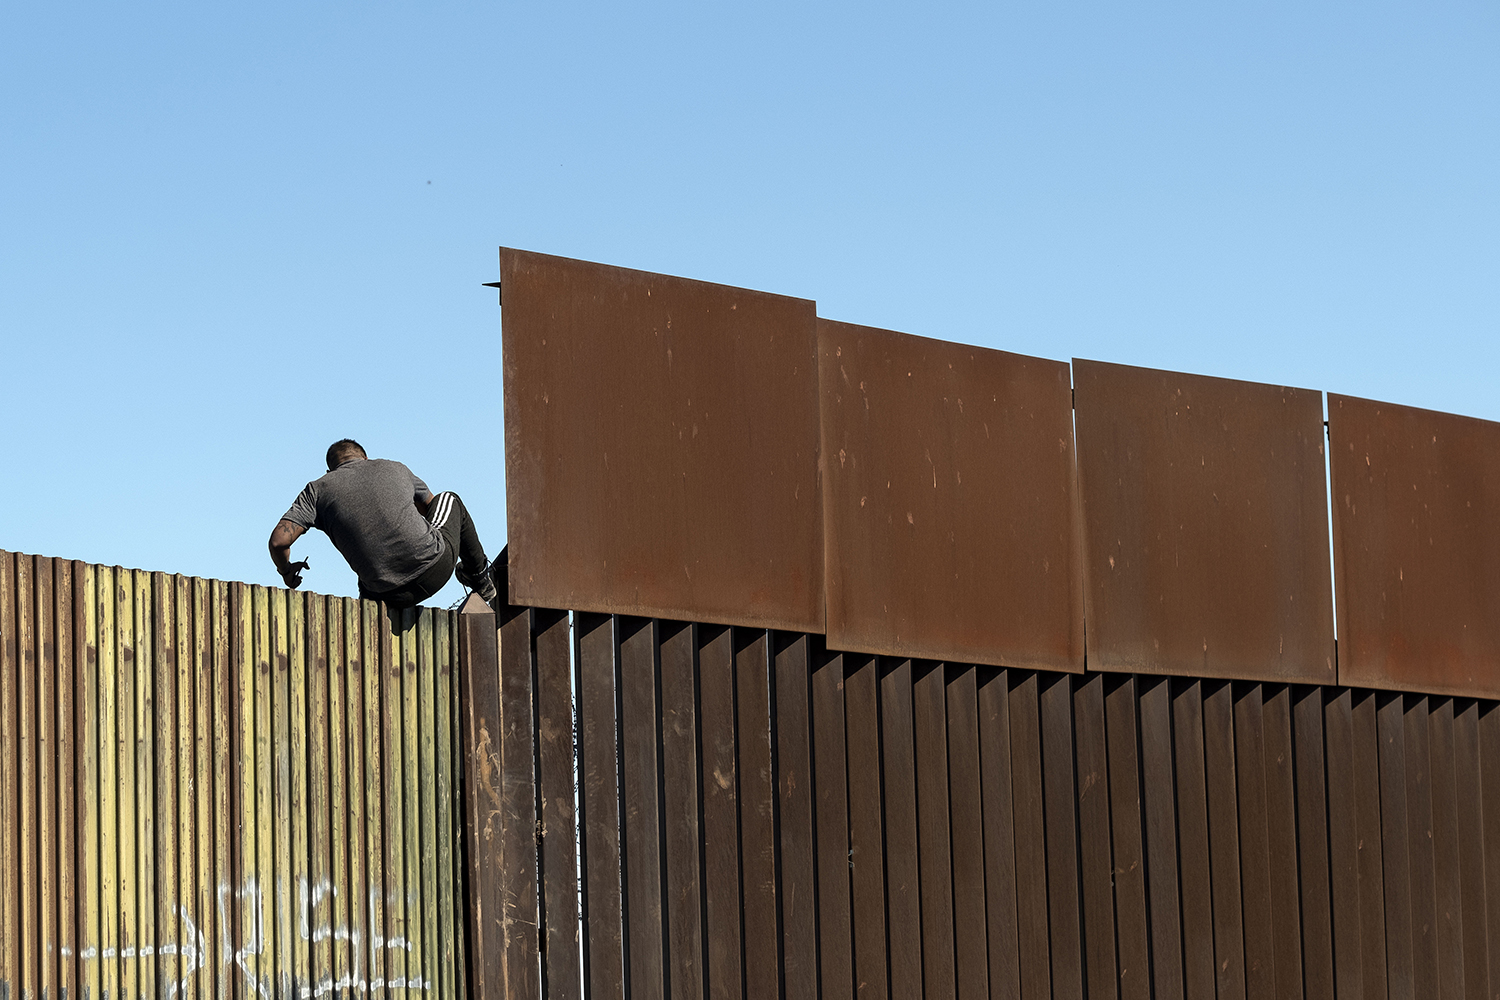 A man crosses over the U.S.-Mexico border fence from Mexicali to Calexico on Feb. 11. GUILLERMO ARIAS/AFP via Getty Images